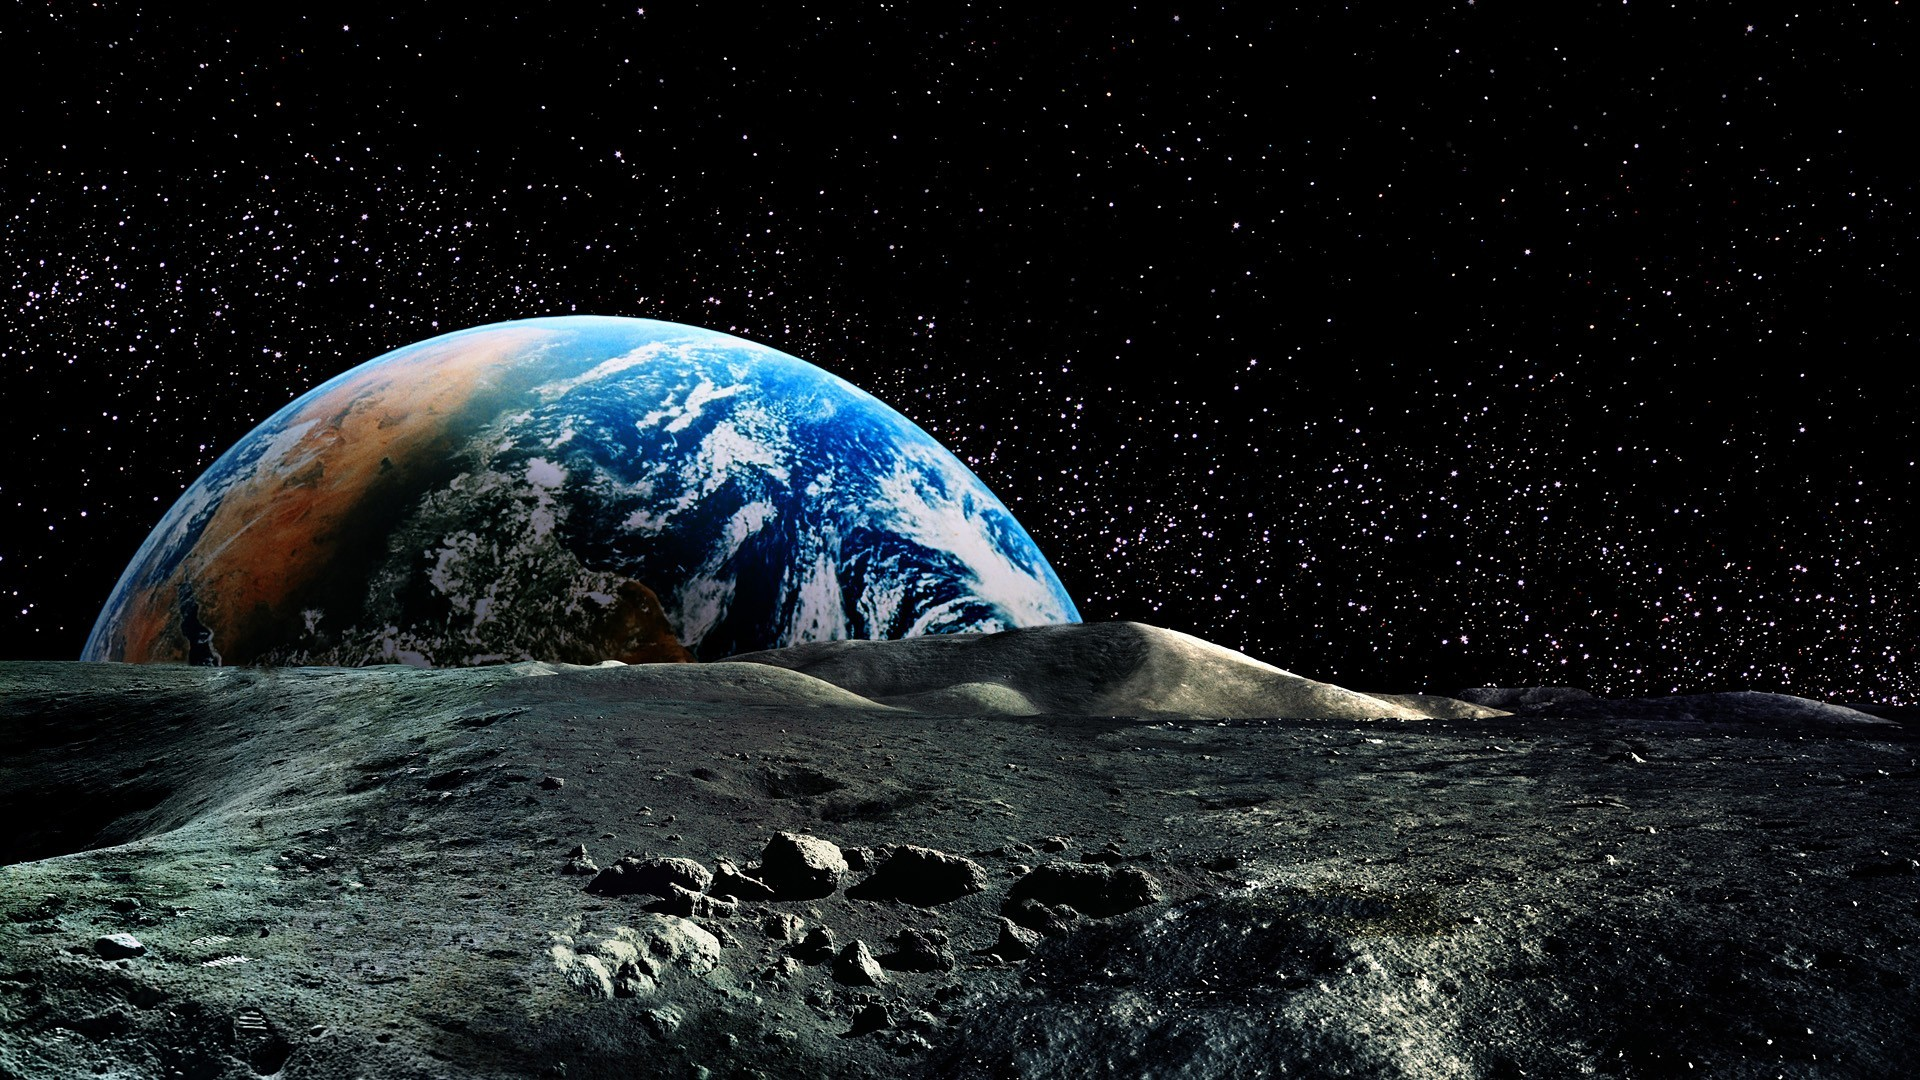 View from the moon Space HD desktop wallpaper, Moon wallpaper, Earth  wallpaper, Star wallpaper – Space no.